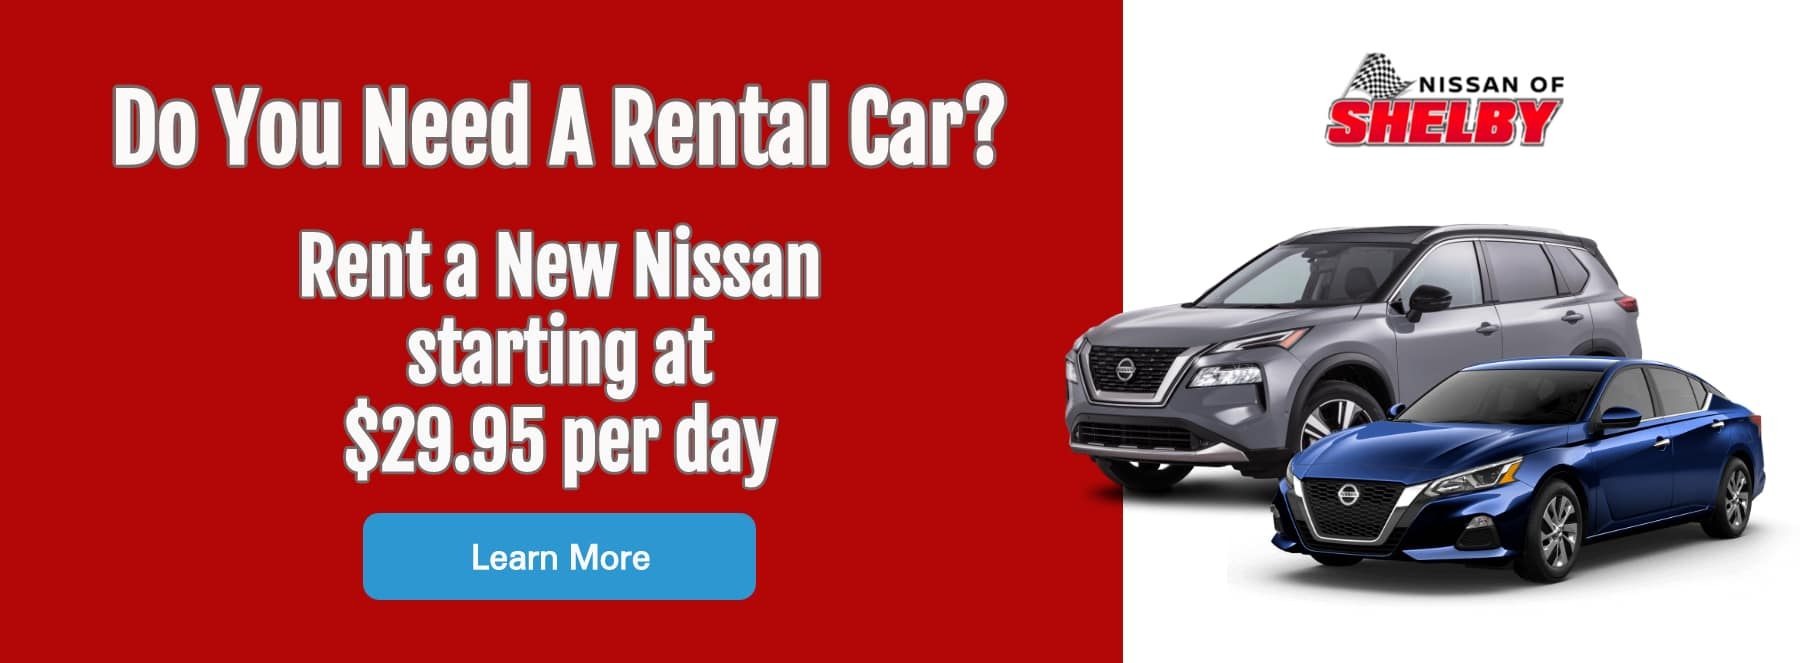 Nissan of Shelby_Rental Car2